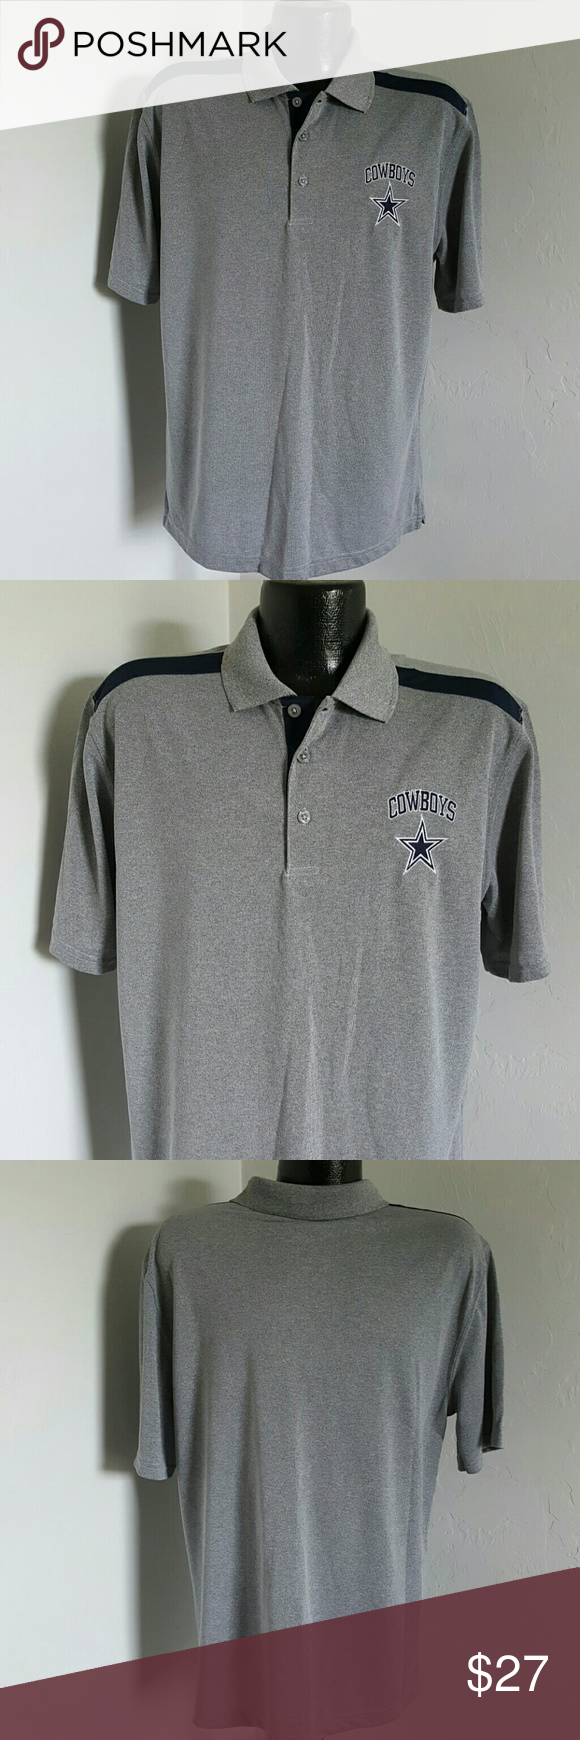 8aa816d1 Dallas Cowboys authentic men polo size L Good used condition ...